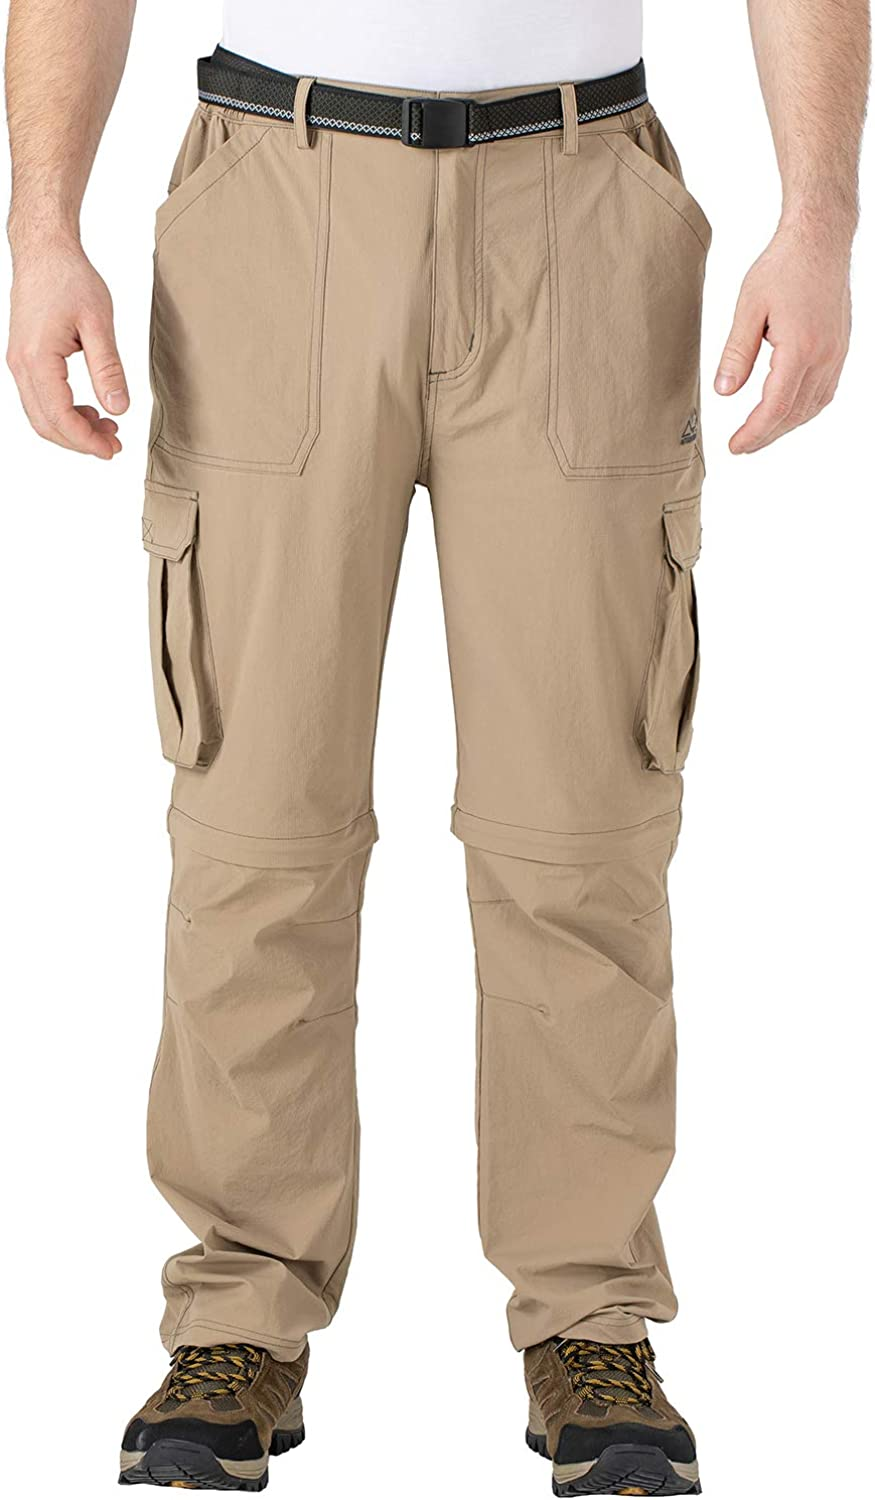 TBMPOY Mens Waterproof Hiking Pants Lightweight Fishing Military Outdoor Travel Pants with Pockets